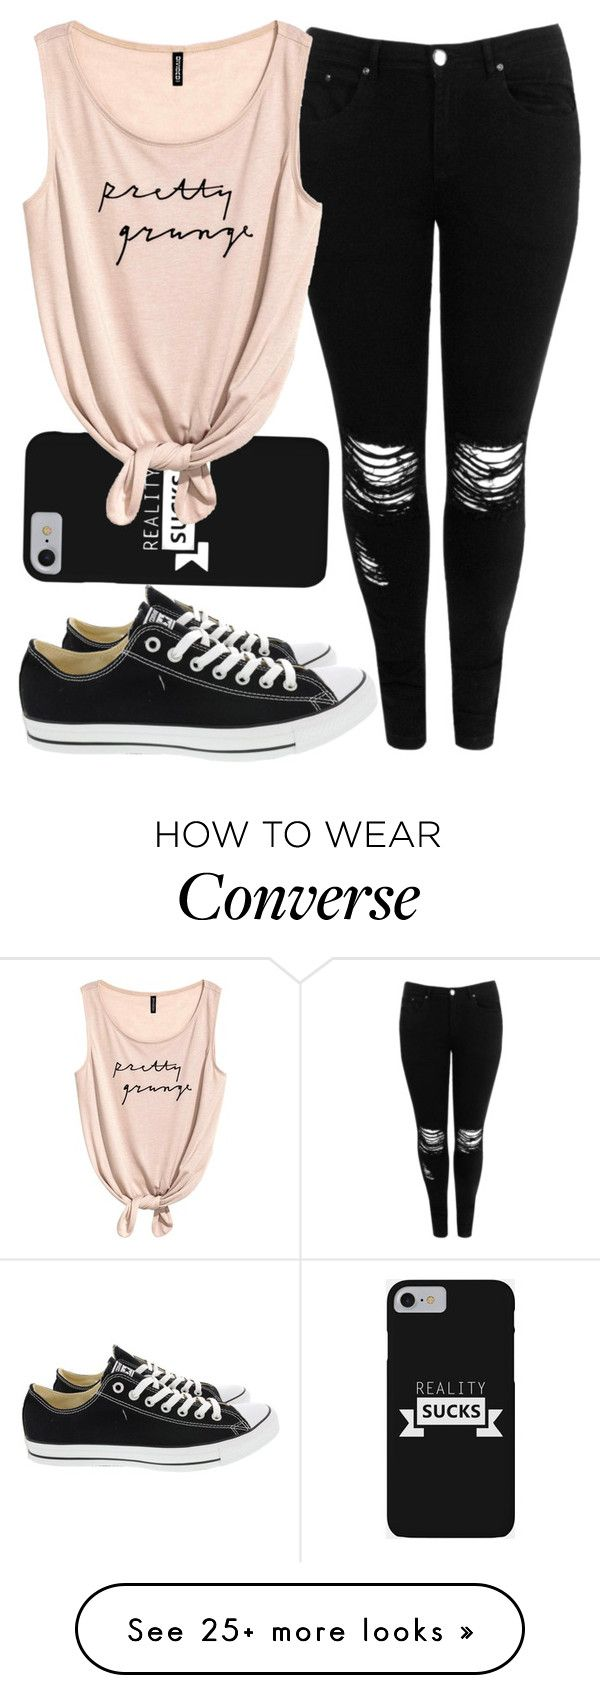 """Untitled #135"" by iouzzani on Polyvore featuring Boohoo and Converse"